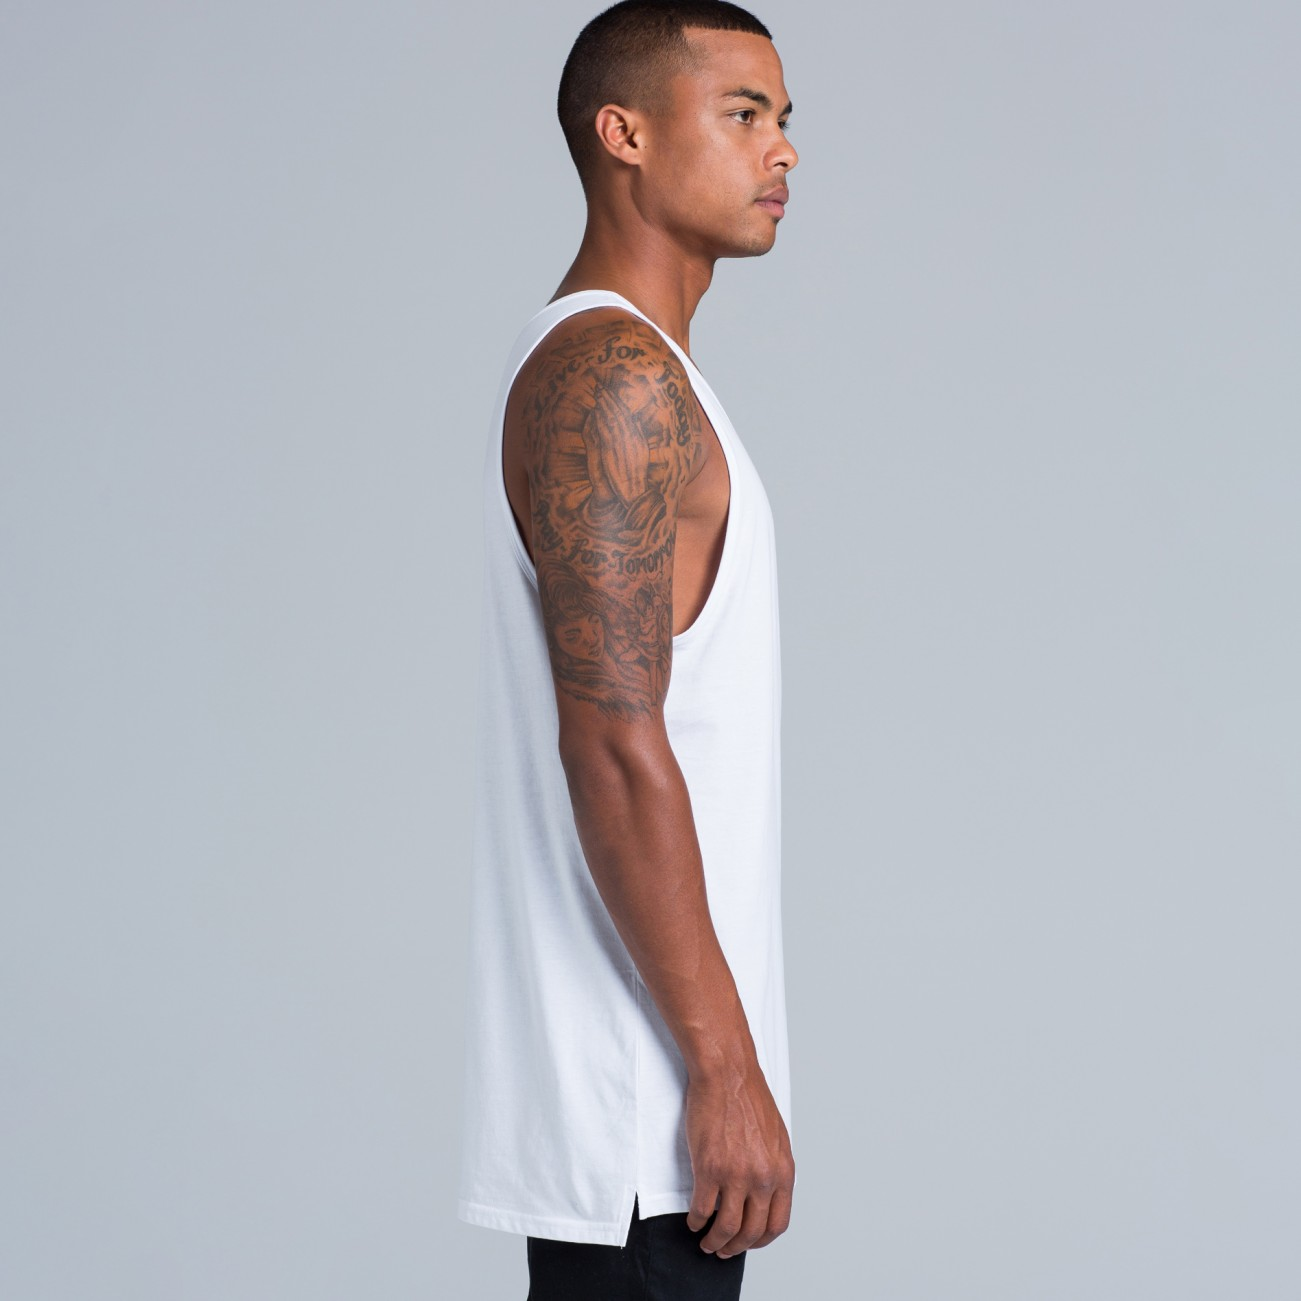 Design your t shirt nz - More Images